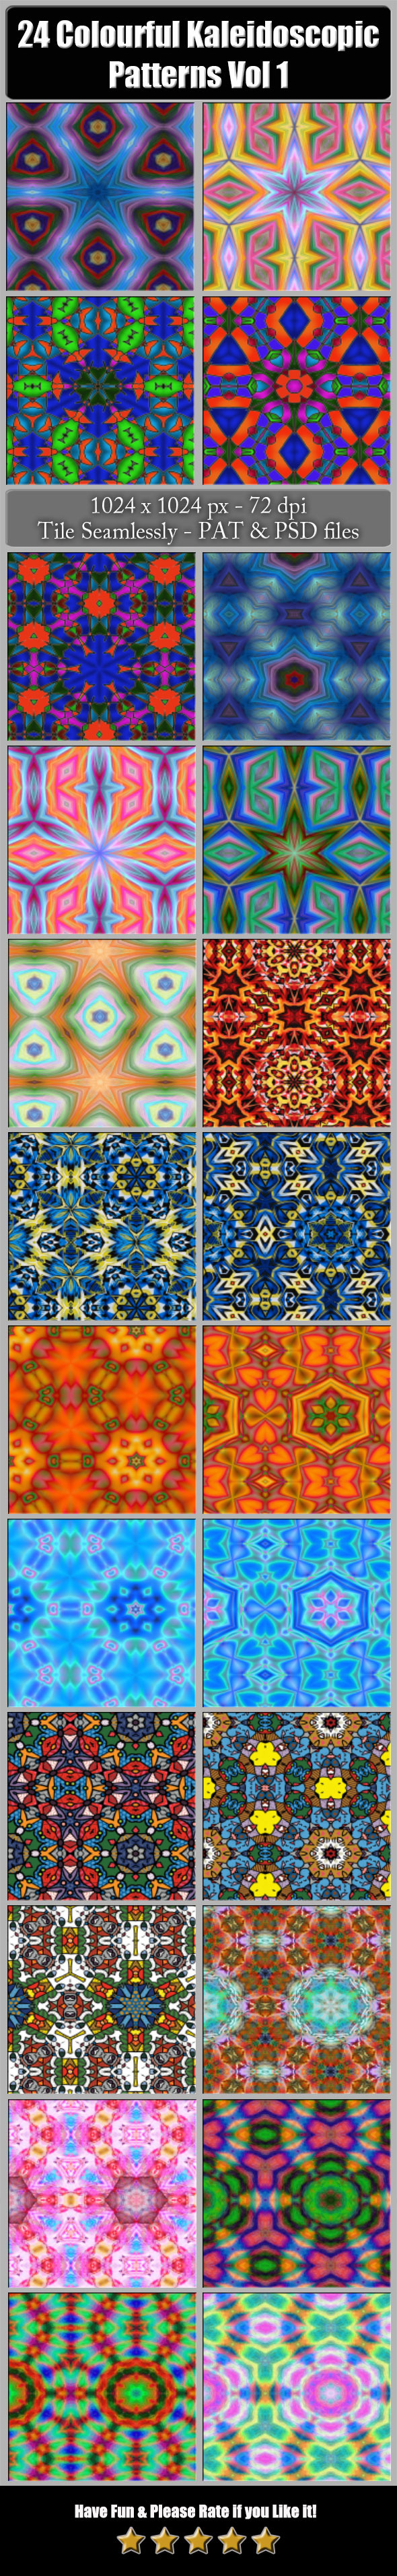 24 Colourful Kaleidoscopic Patterns Vol. 1 - Artistic Textures / Fills / Patterns